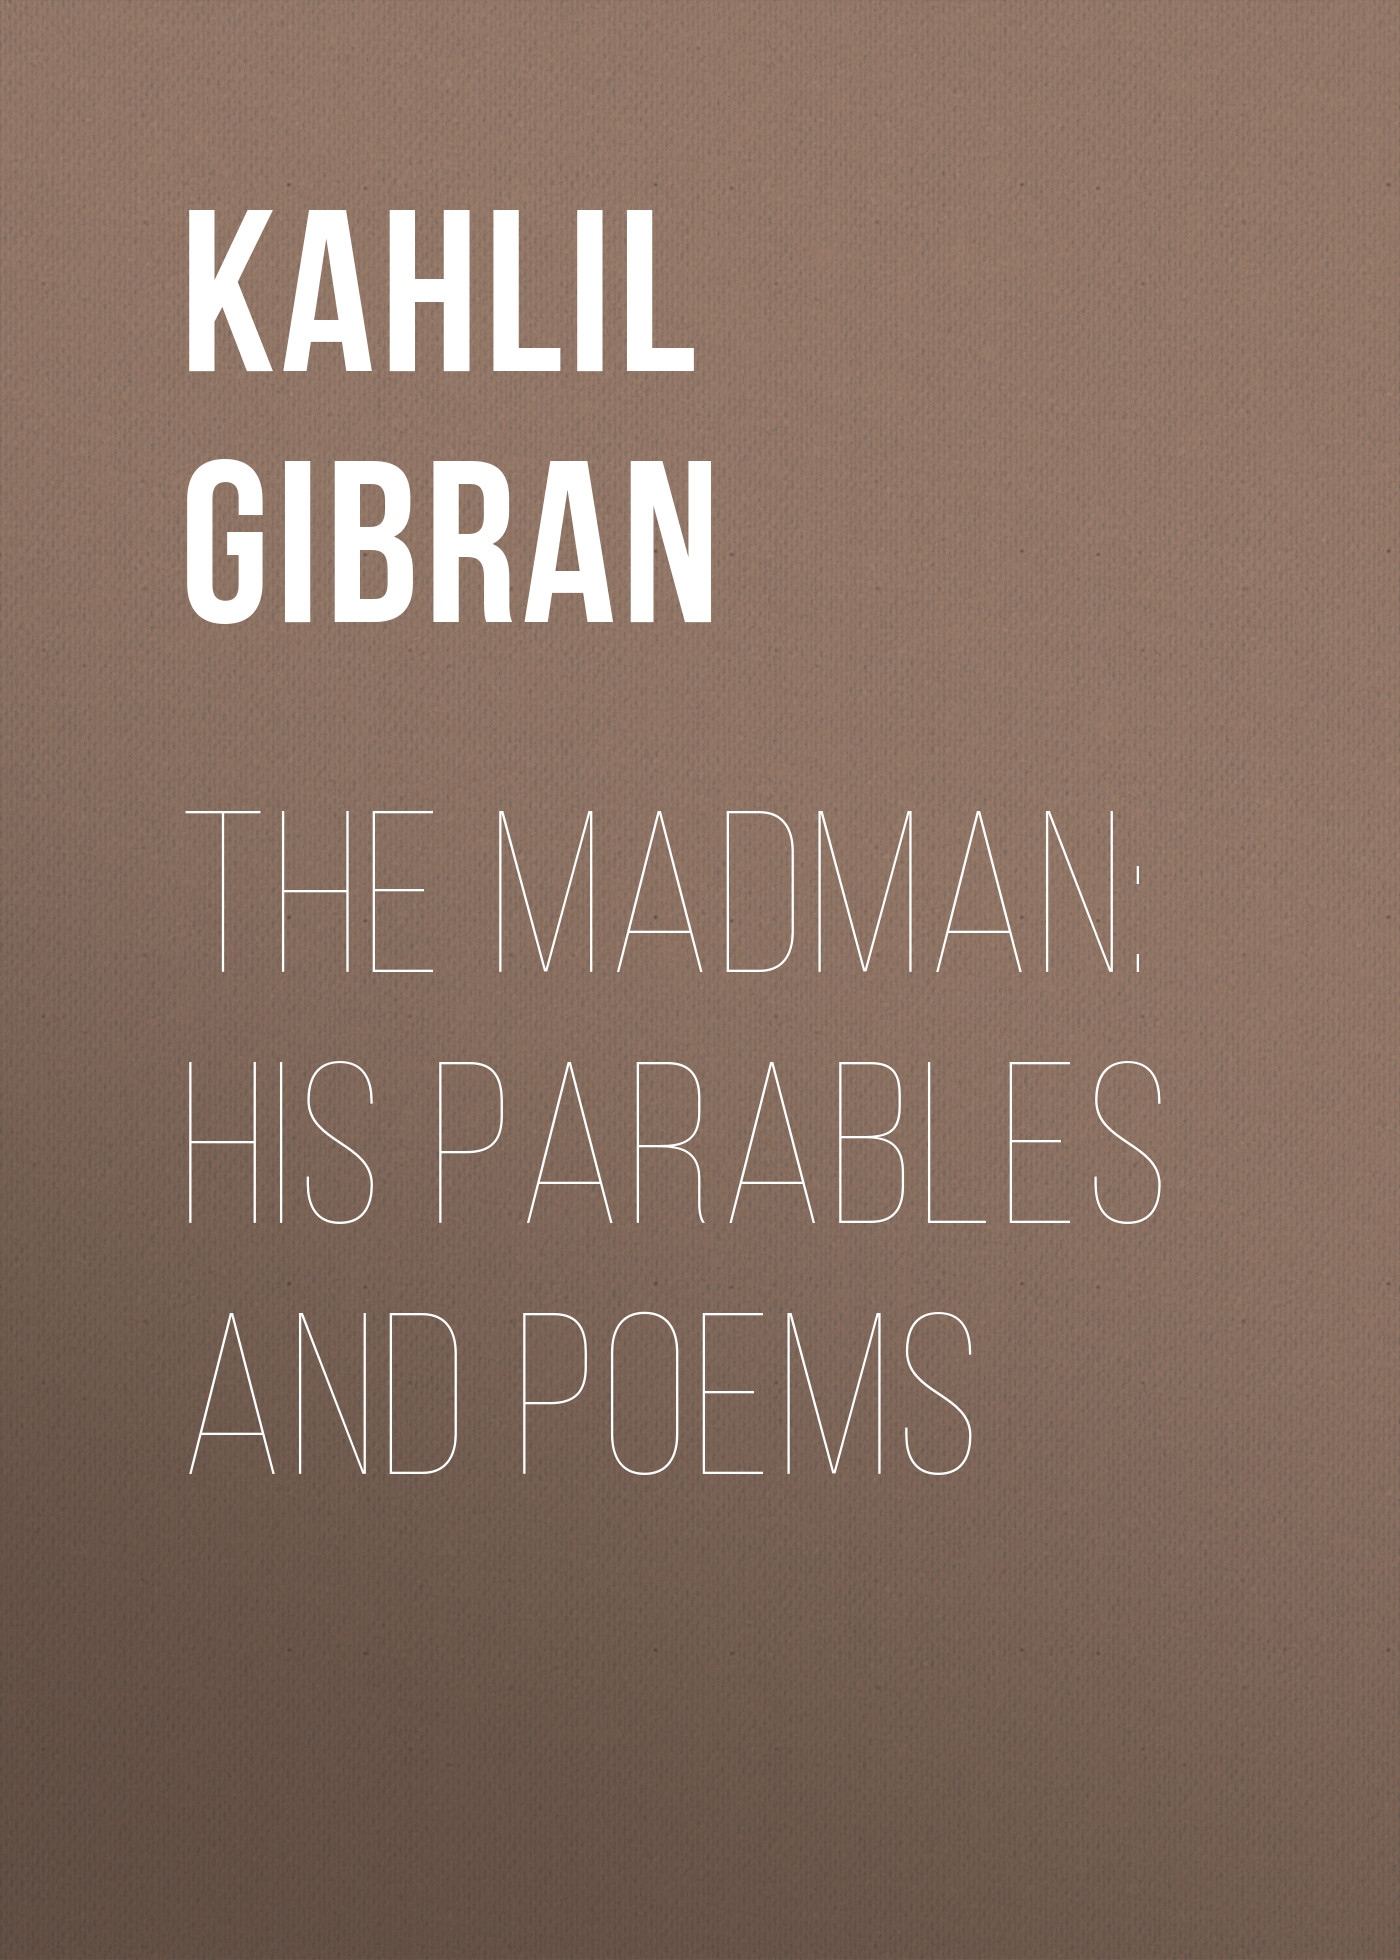 Kahlil Gibran The Madman: His Parables and Poems kahlil gibran the forerunner his parables and poems